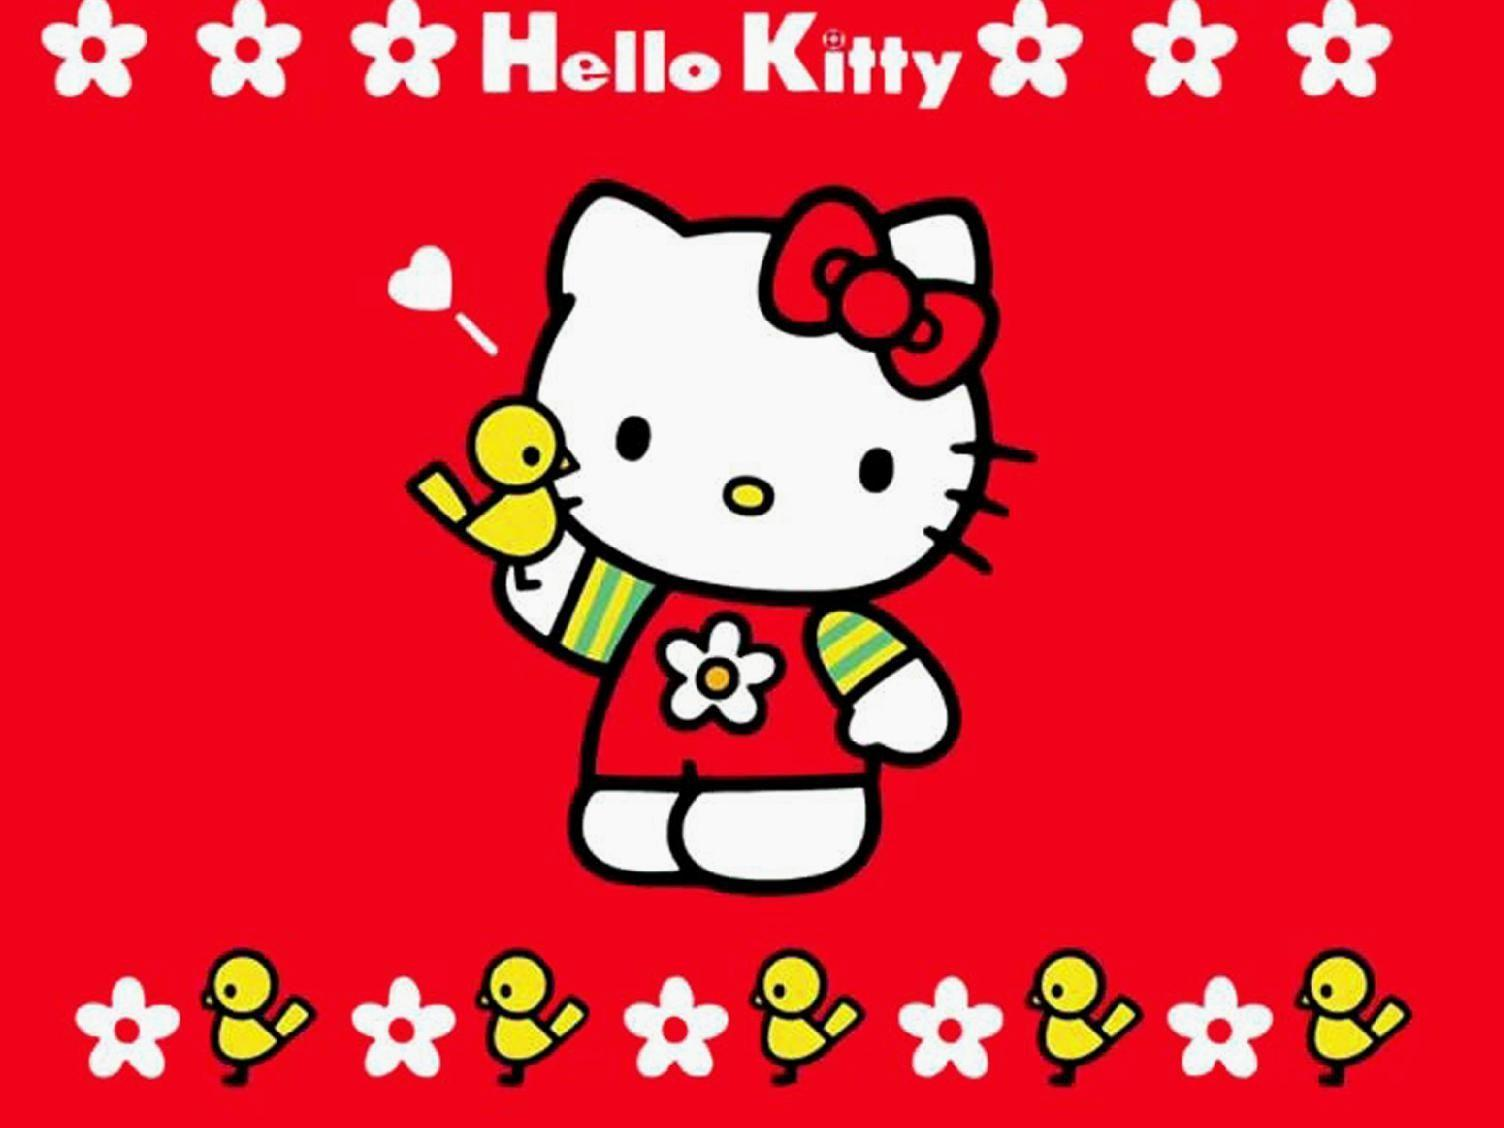 Image for Hello Kitty Wallpapers HD Merah Lucu